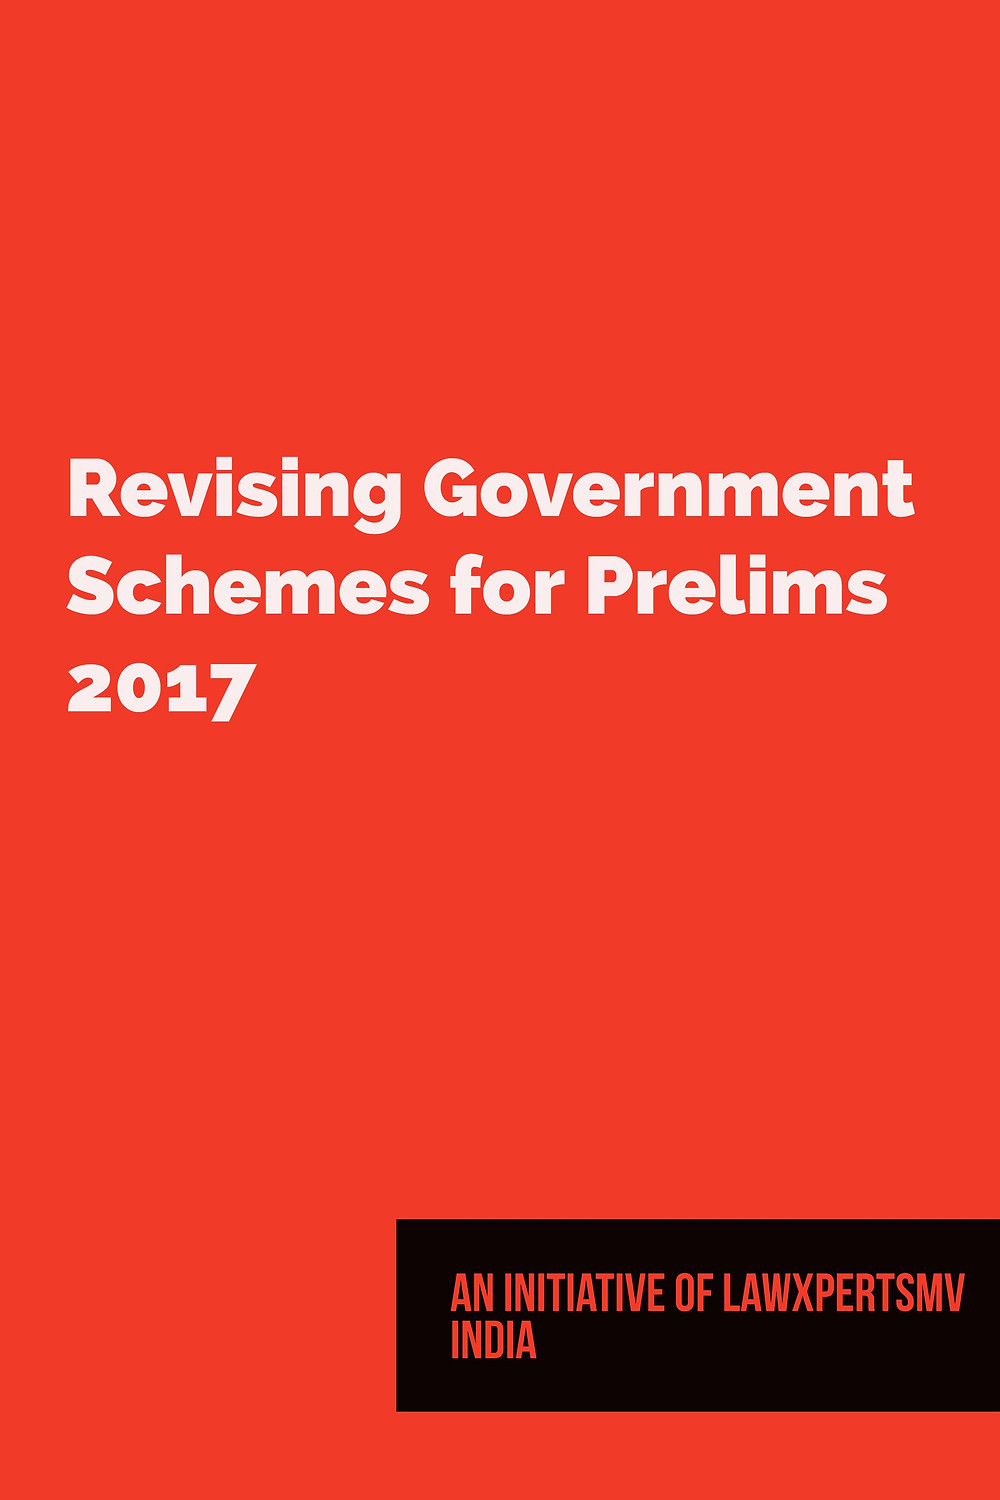 Revising Government Schemes for Prelims 2017